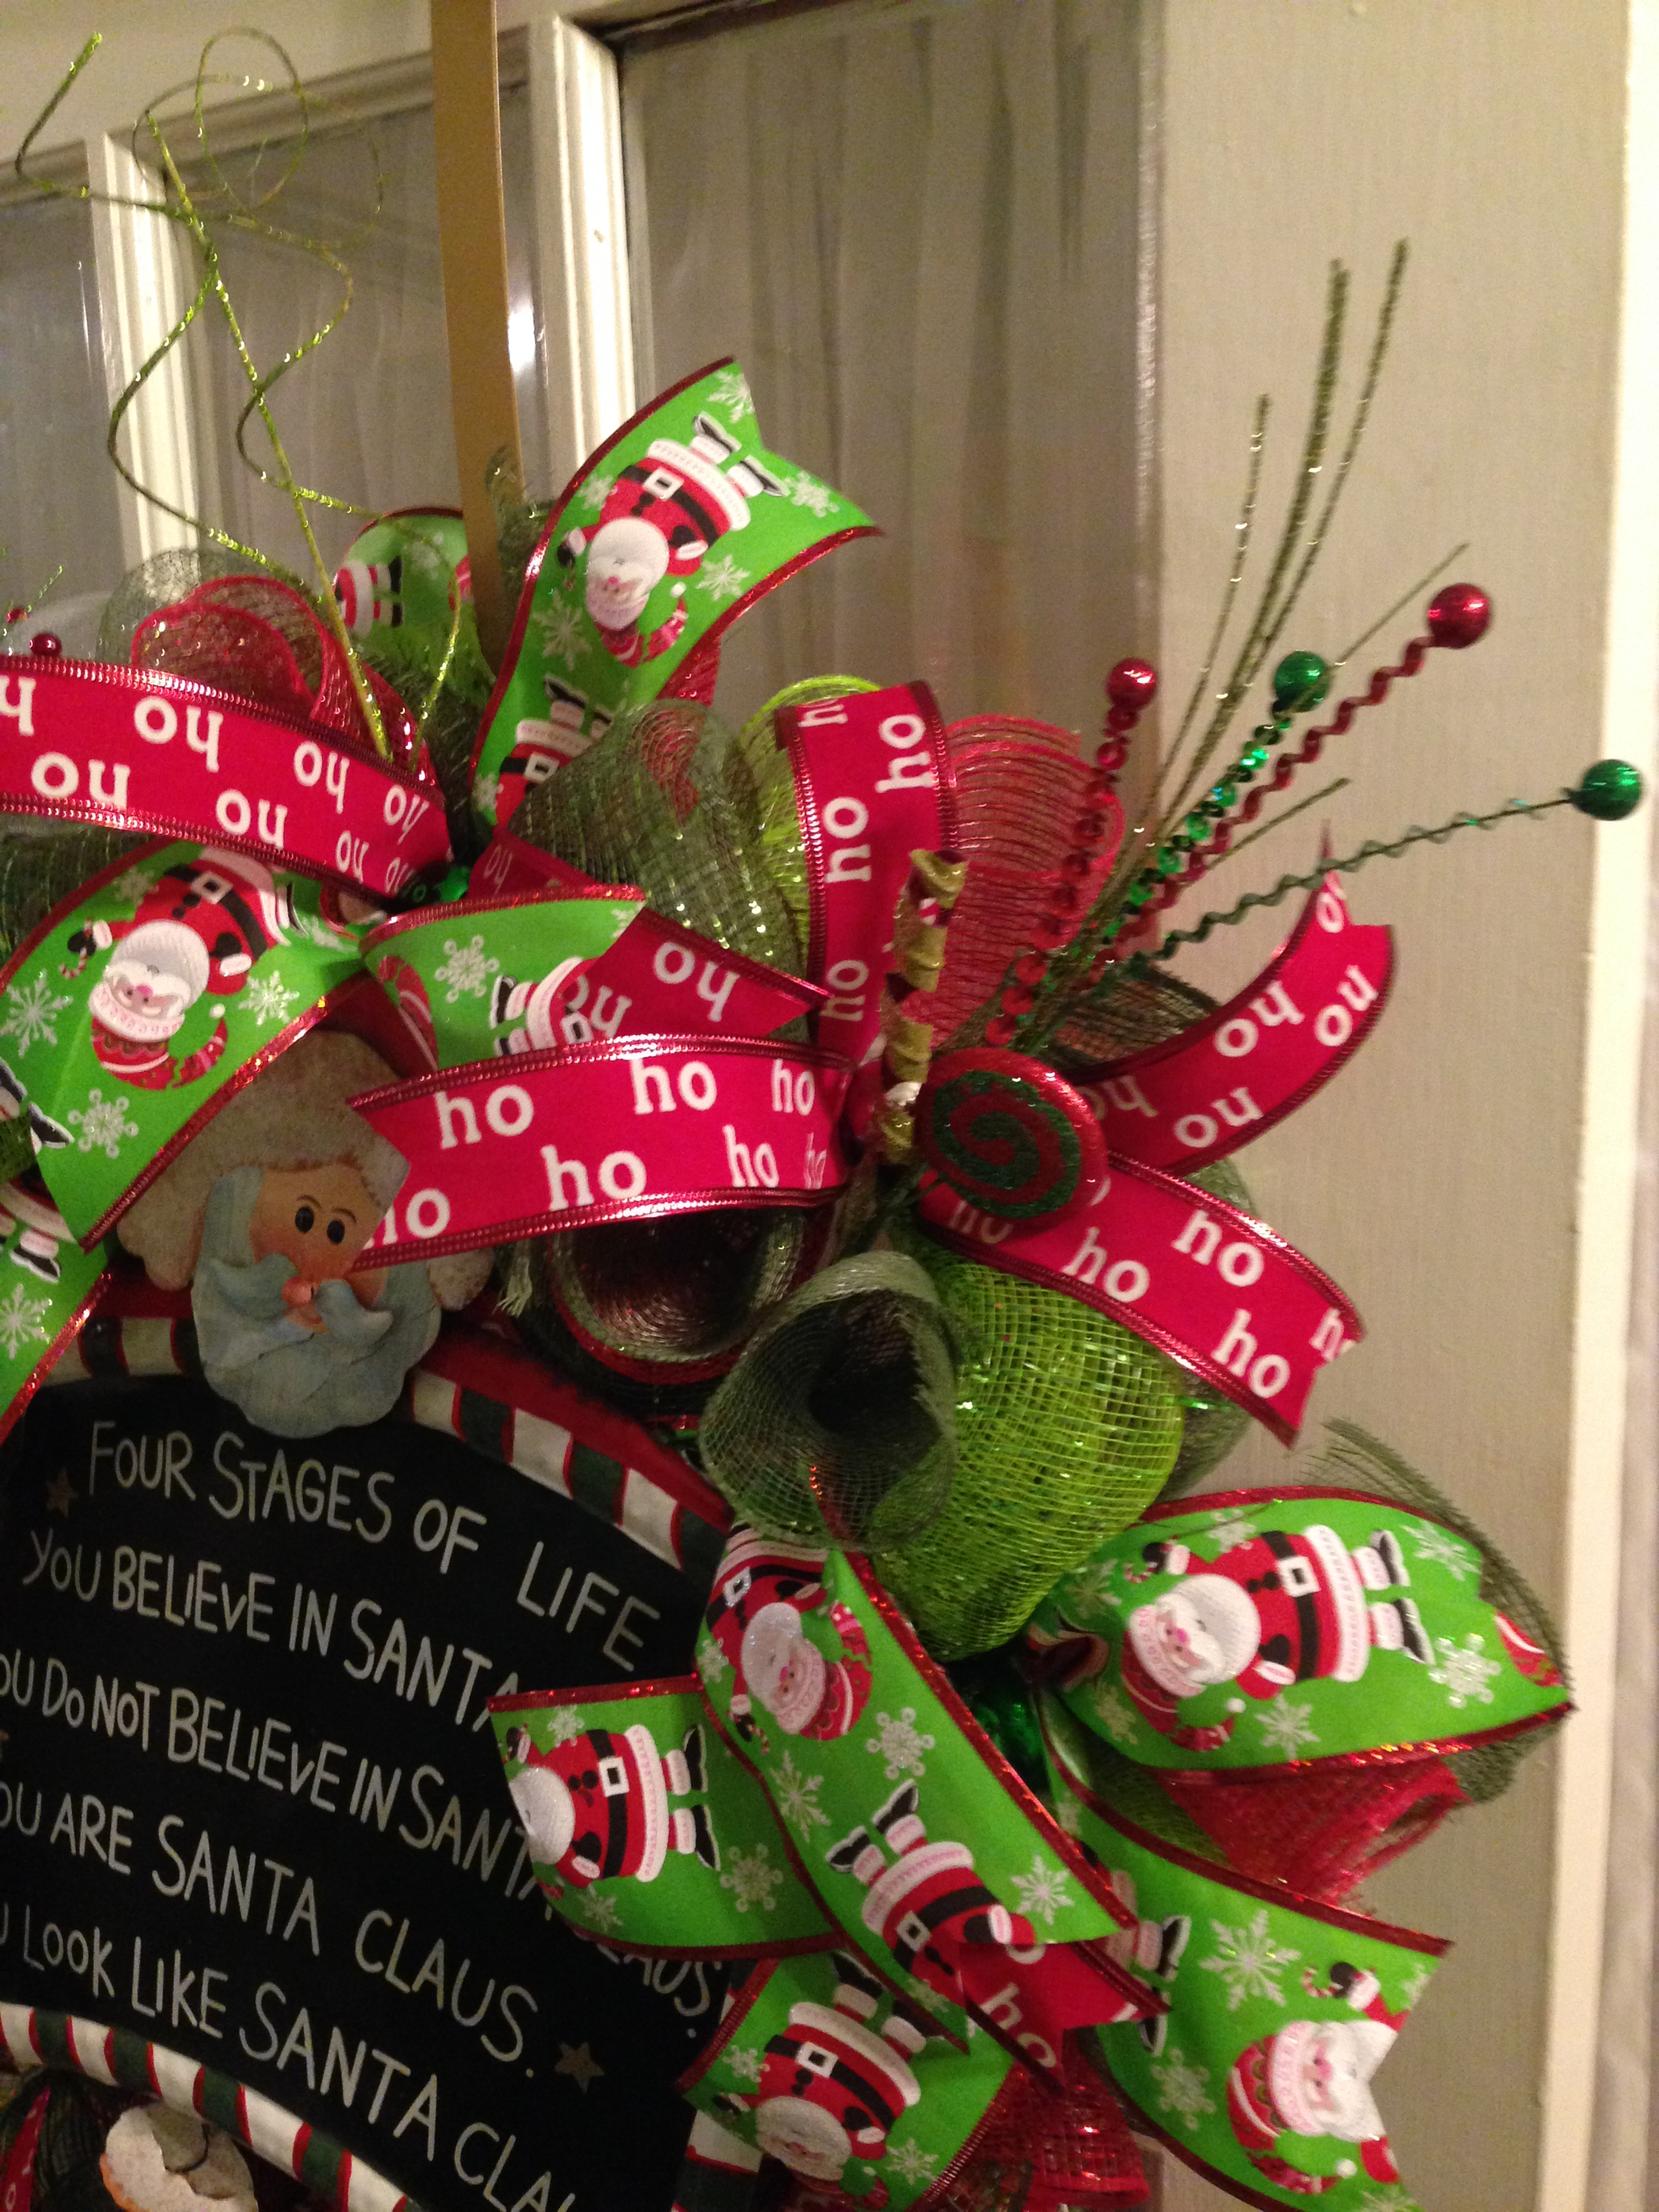 Christmas Ribbon Wreaths.Santa Claus Wreath Deco Mesh Ribbon Christmas Lime Green Red Mesh From Wreaths By Rosie